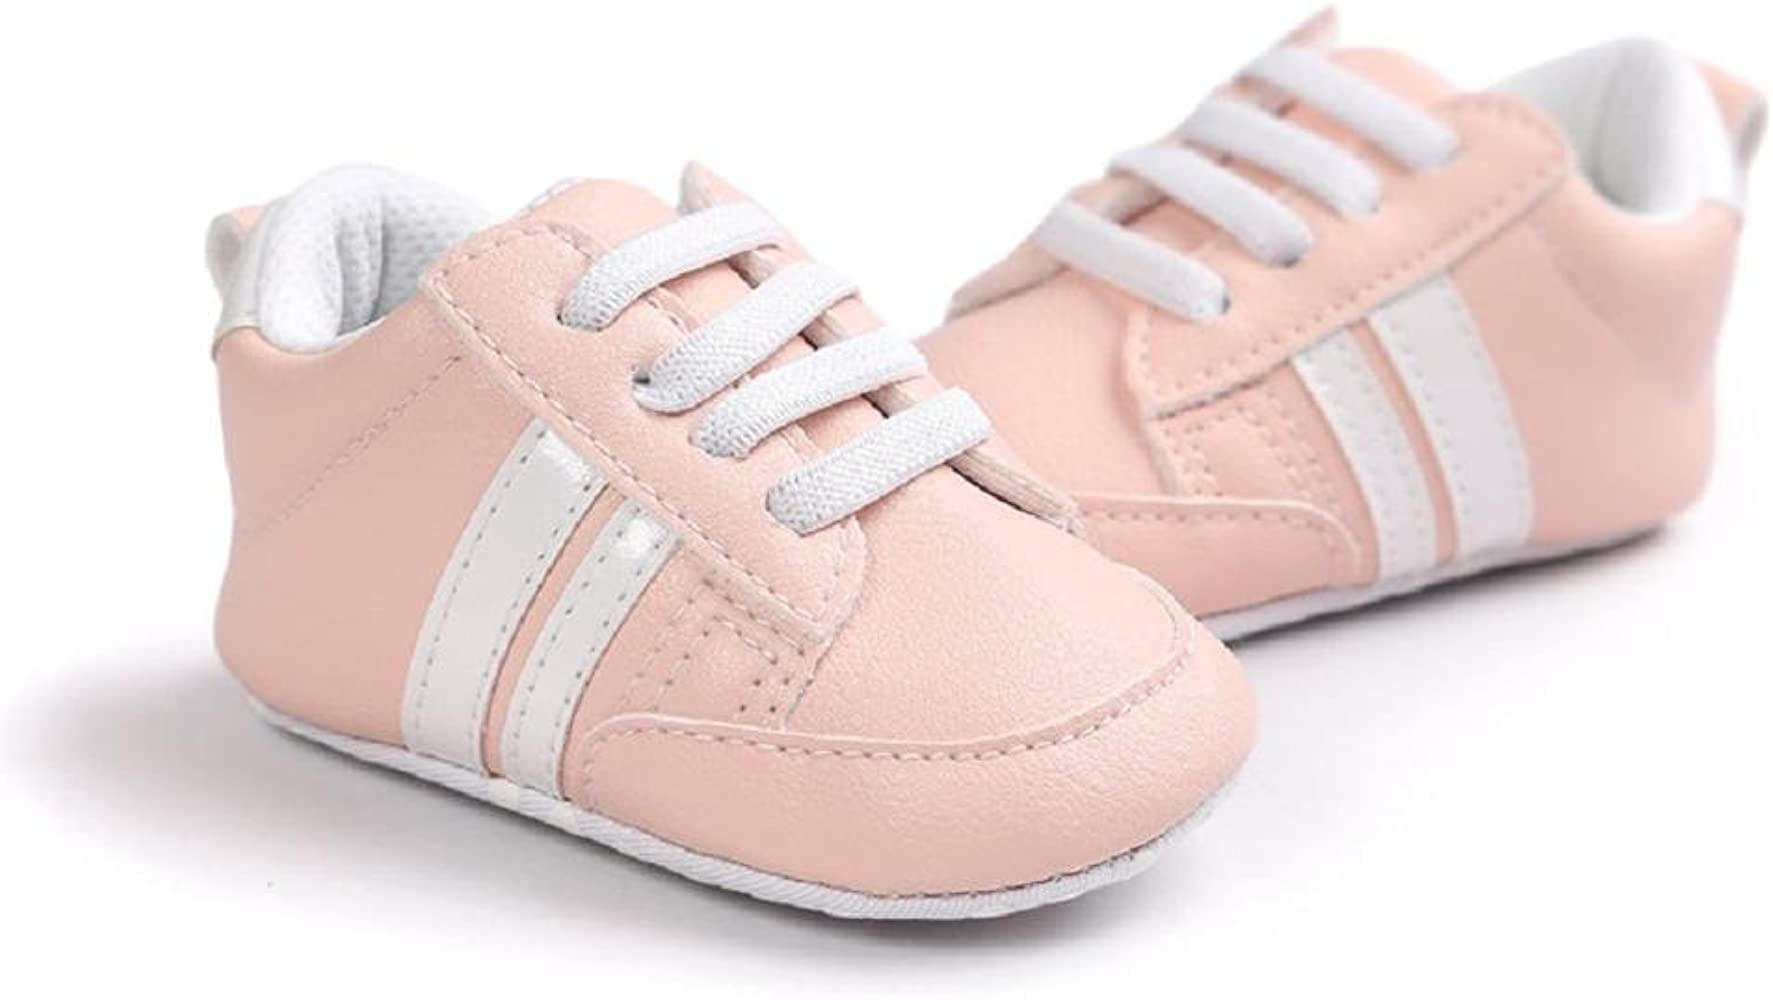 Baby Shoes Soft Bottom Anti-skid PU Leather Shoe For Infant Toddler Boys Girls